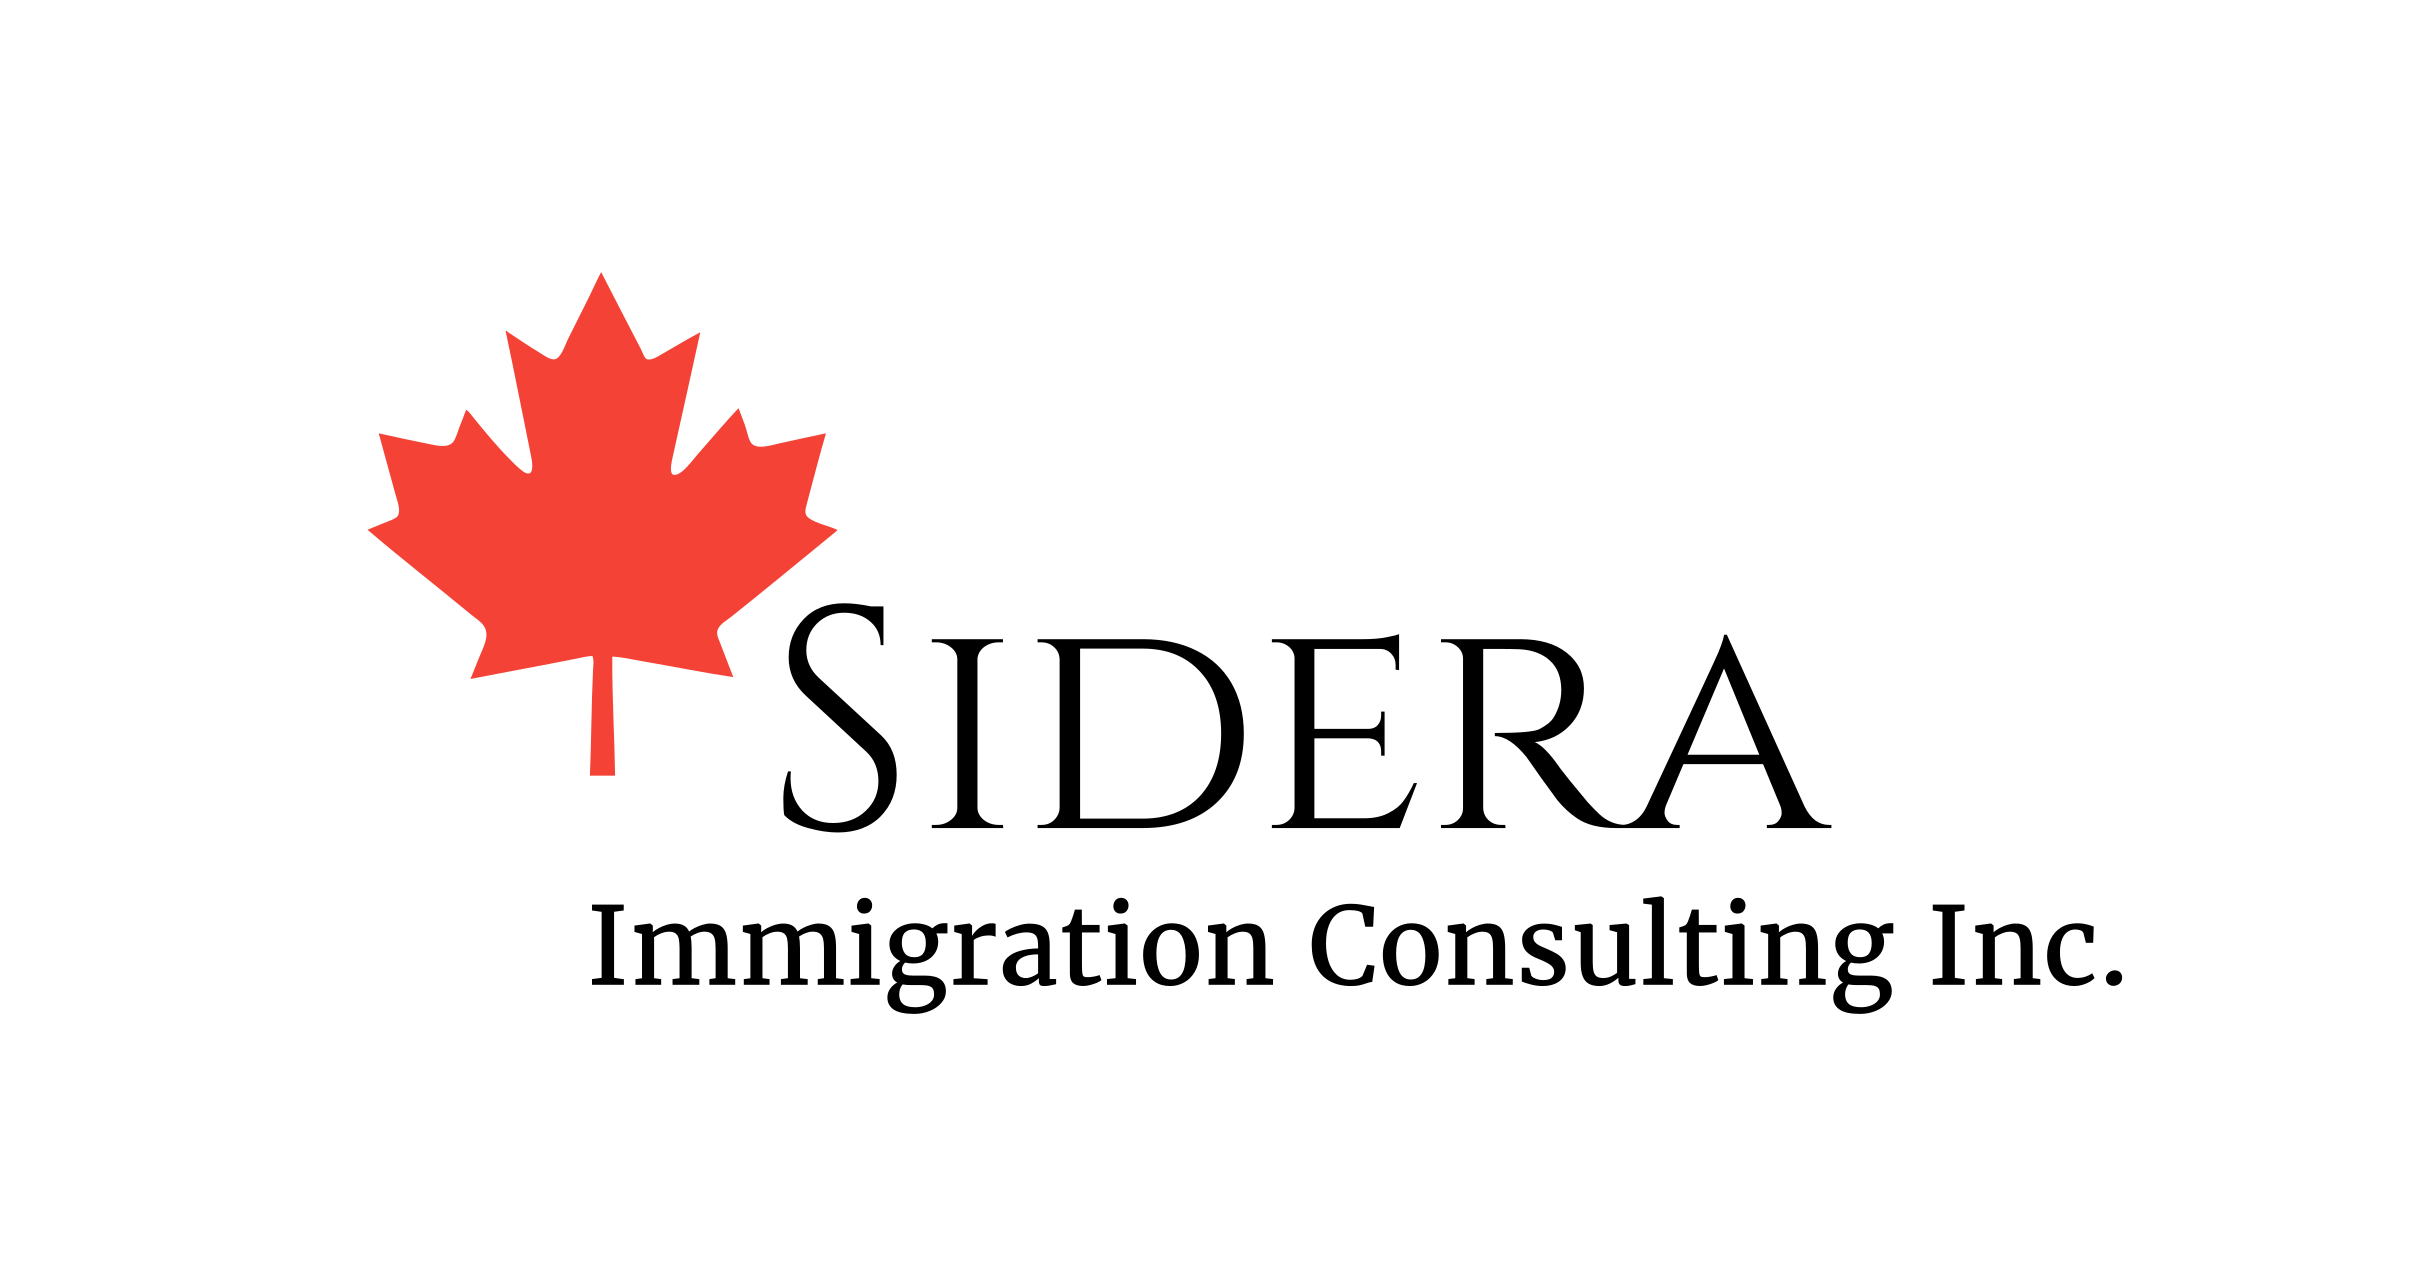 صورة Job: Business Development & Sales Specialist at Sidera Immigration Consulting Inc. in Cairo, Egypt